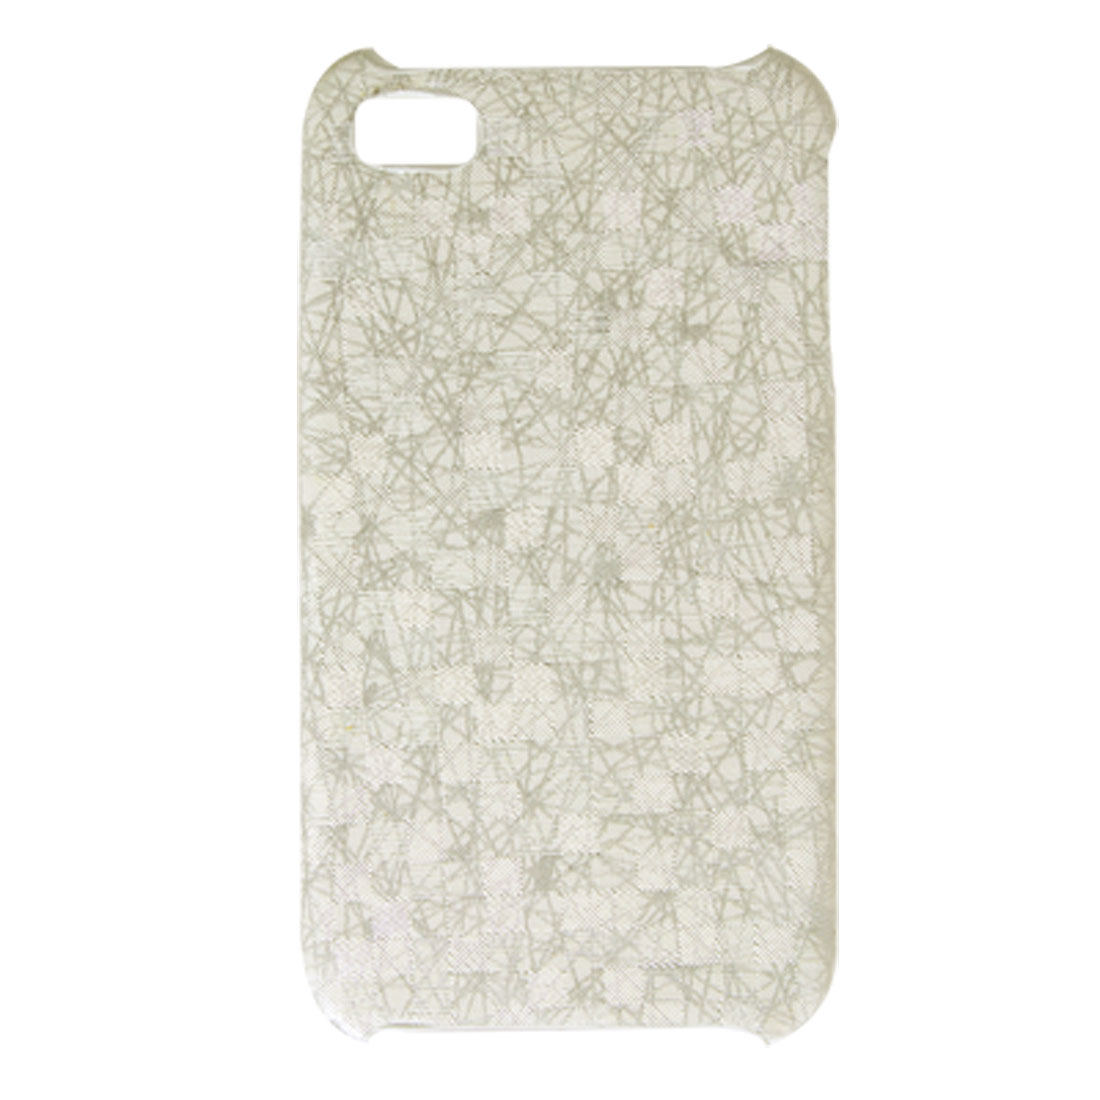 White Gray Hard Plastic Cover Nonslip Case for iPhone 4 4G